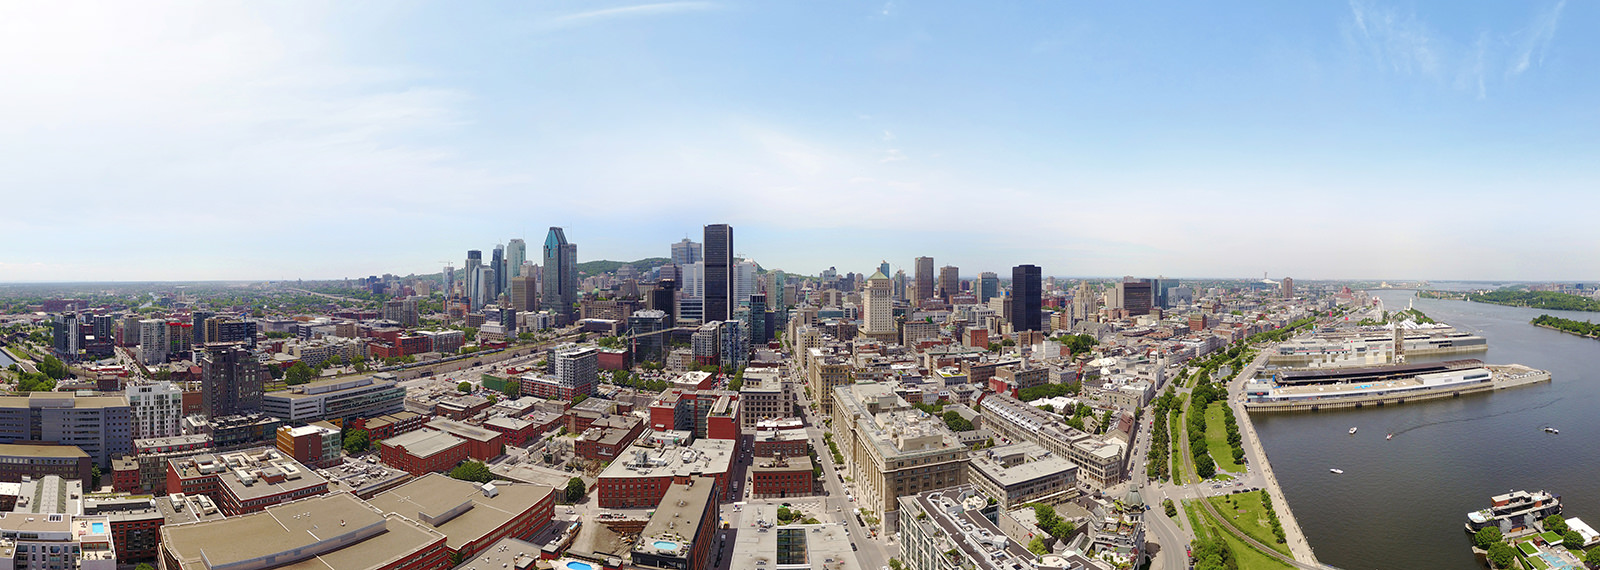 Montreal Vieux-Port, Downtown, Quebec, Canada - Virtual tour